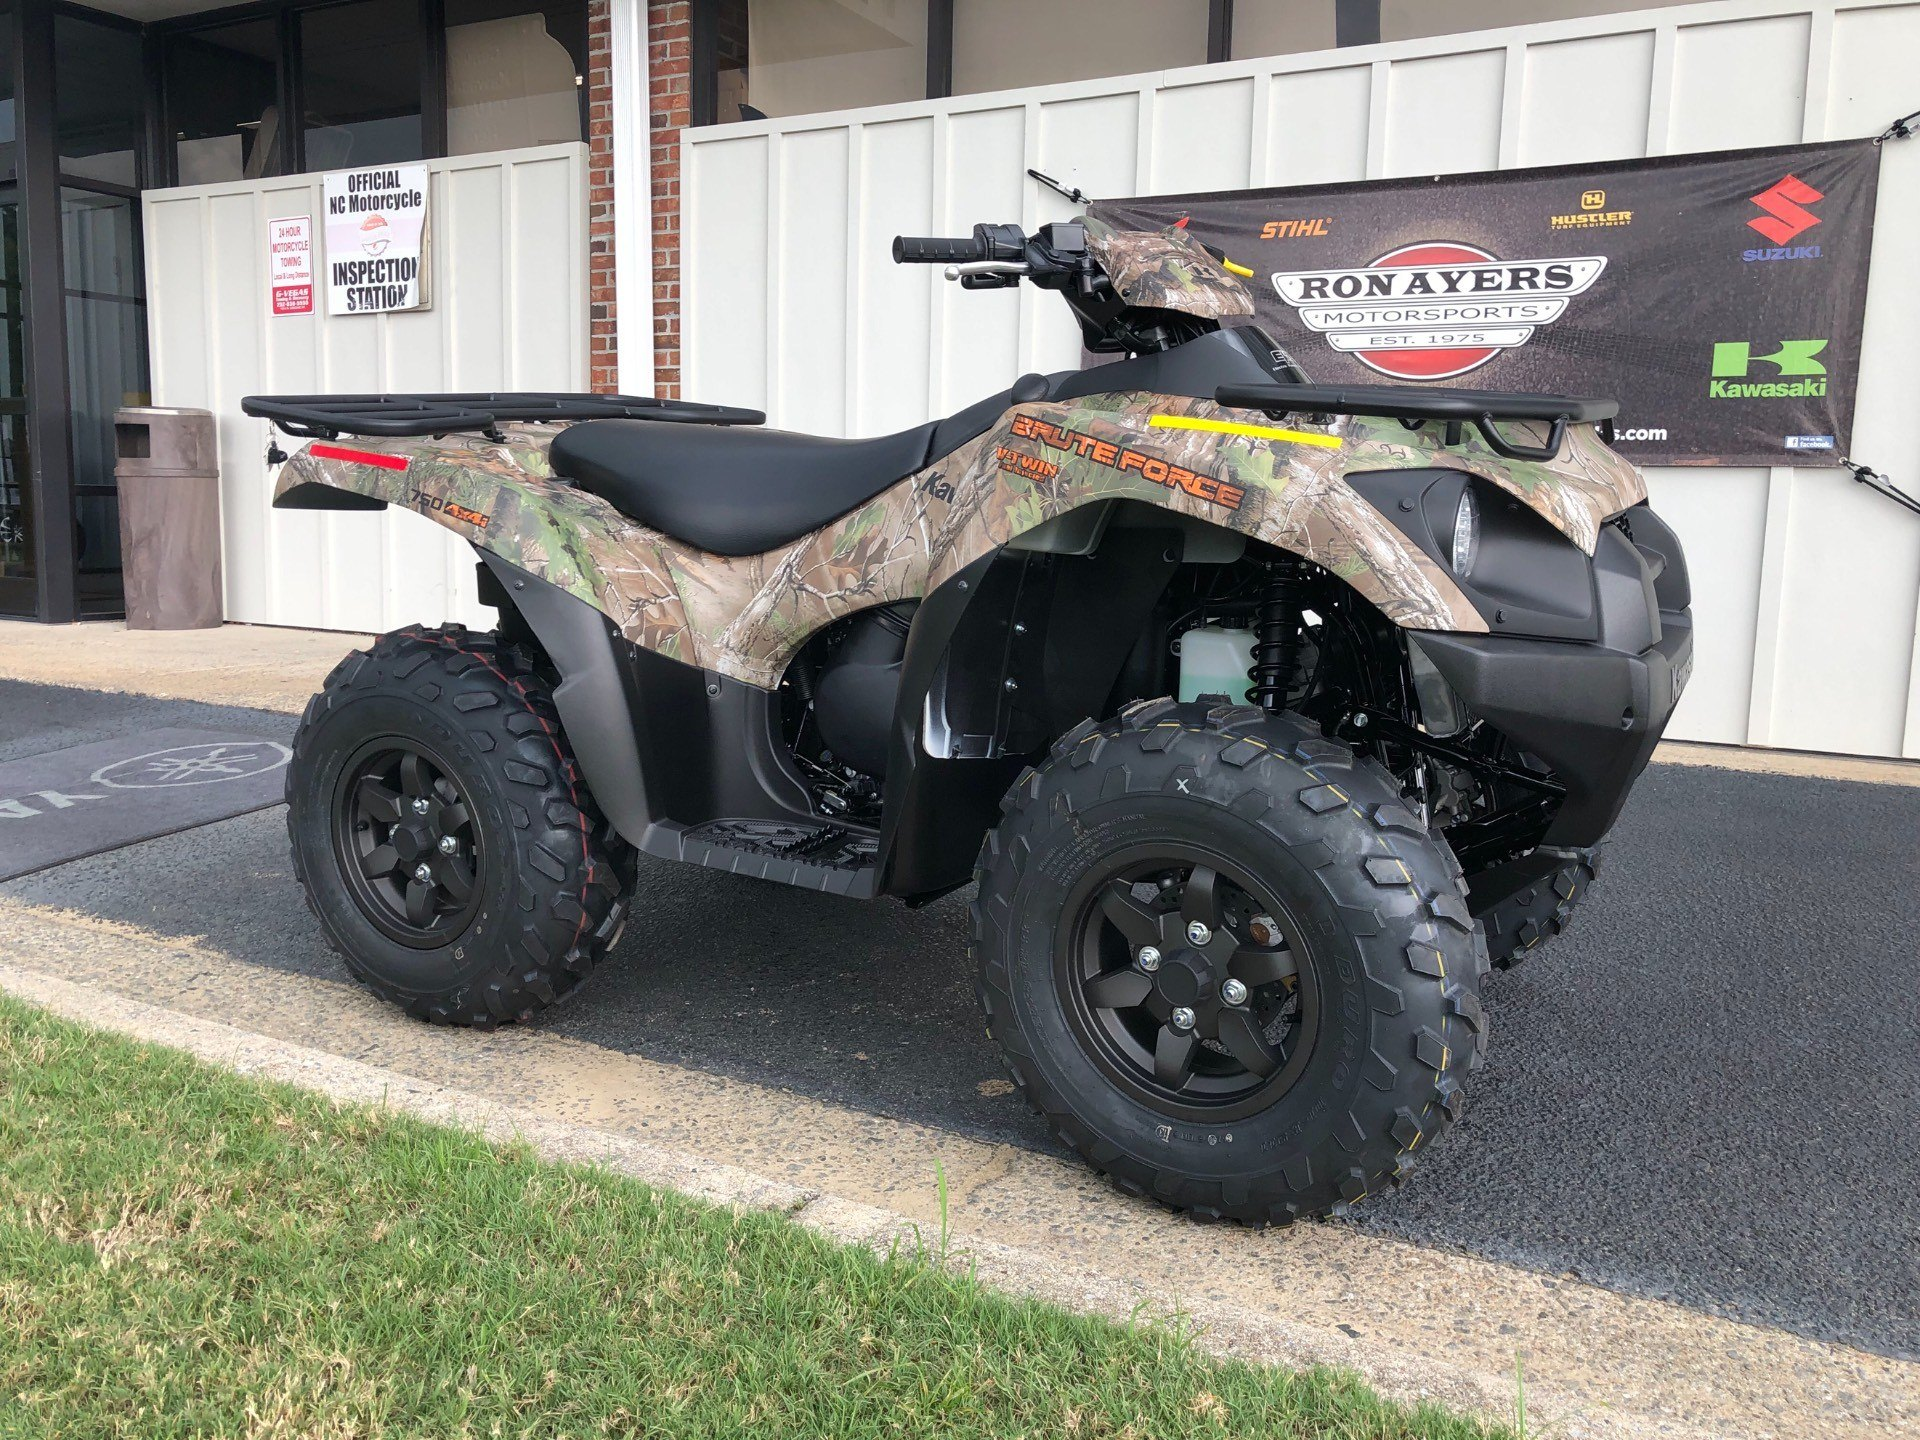 2020 Kawasaki Brute Force 750 4x4i EPS Camo in Greenville, North Carolina - Photo 2